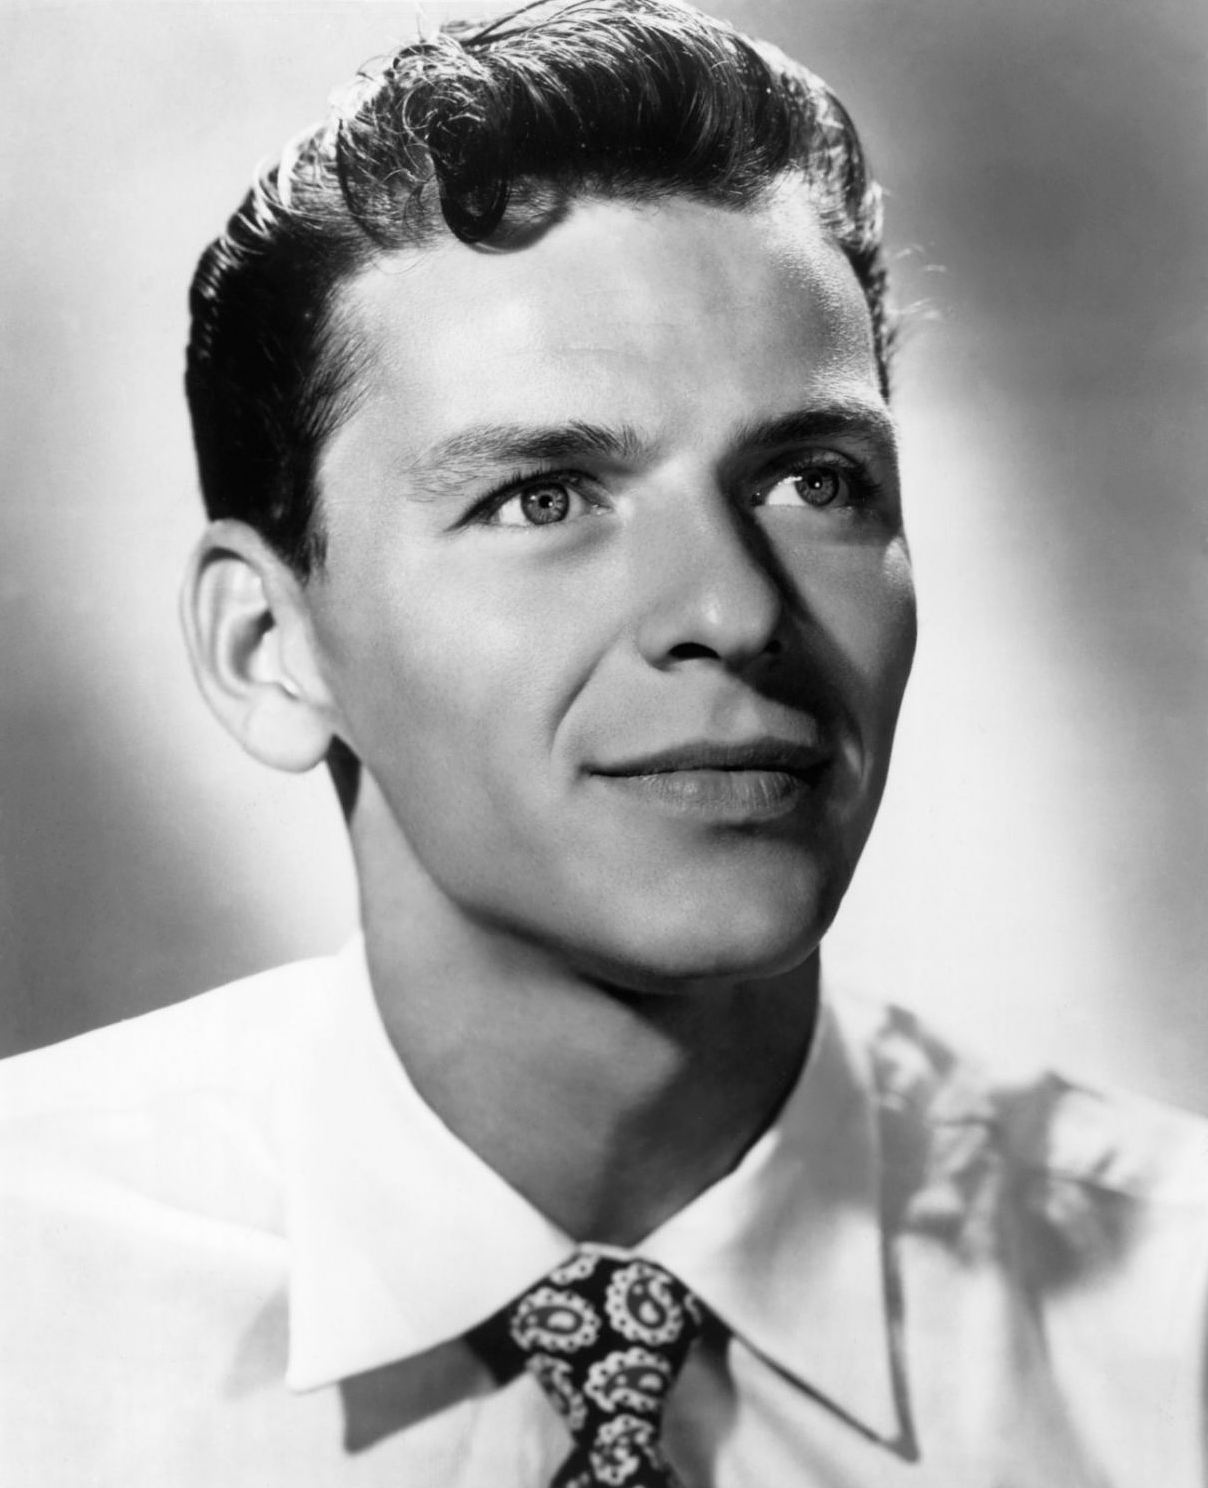 Frank sinatra date of birth in Sydney